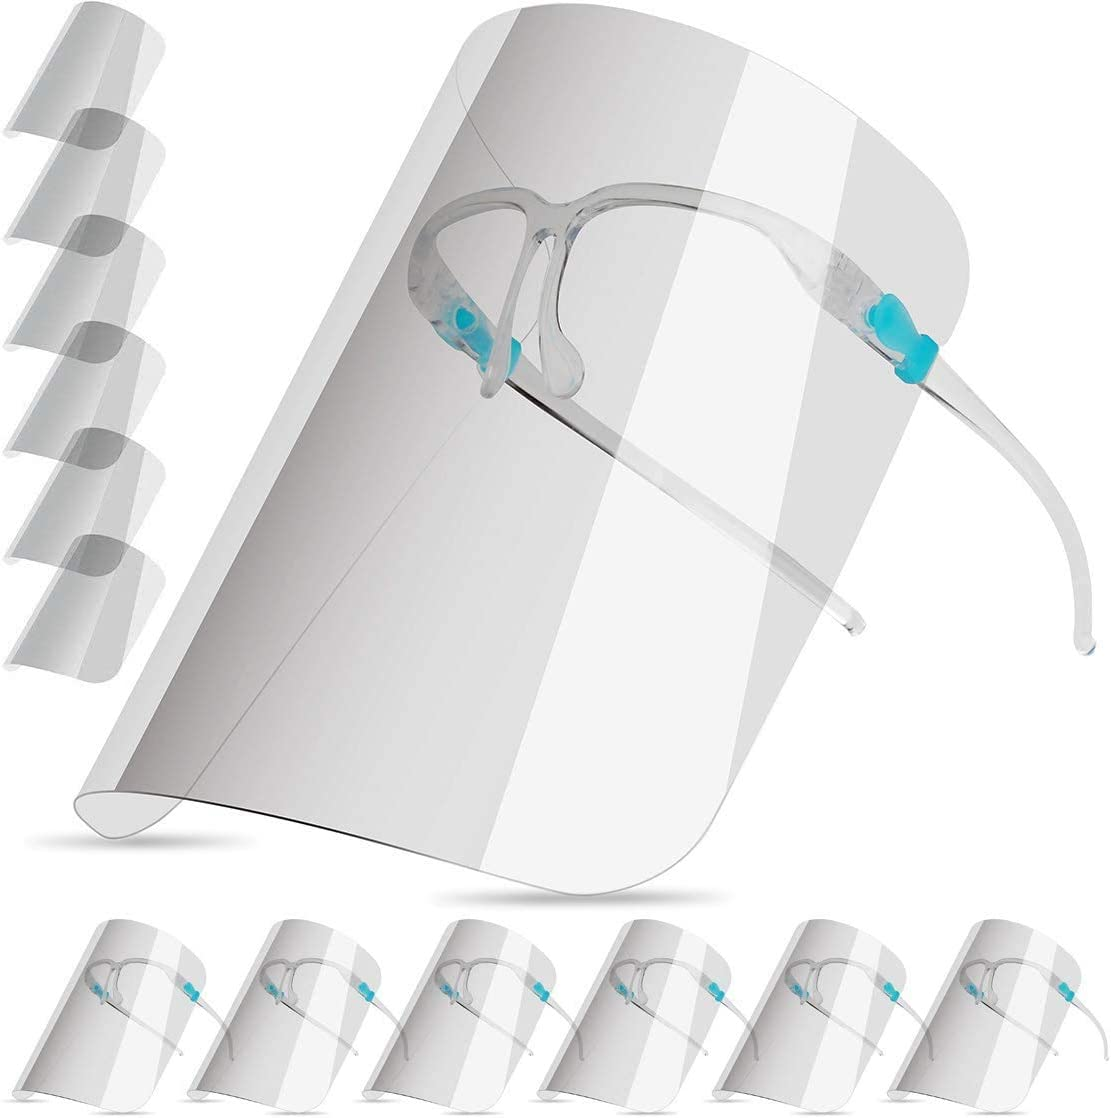 salipt Face Shields Set with 12 Replaceable Clear Films and 6 Acrylic Glasses Reusable and Cleanable for Women /& Men